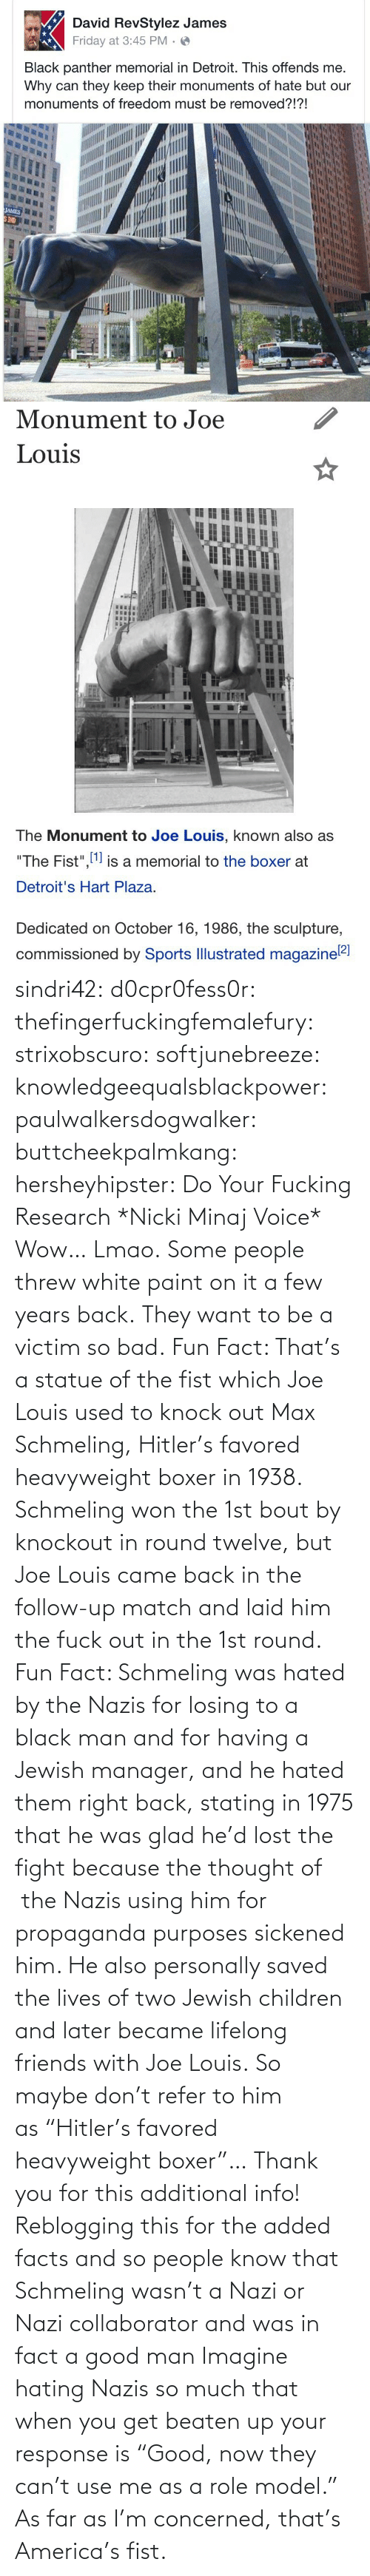 "White: sindri42:  d0cpr0fess0r:  thefingerfuckingfemalefury:  strixobscuro:  softjunebreeze:  knowledgeequalsblackpower:  paulwalkersdogwalker:   buttcheekpalmkang:   hersheyhipster:  Do Your Fucking Research *Nicki Minaj Voice*    Wow… Lmao.   Some people threw white paint on it a few years back.   They want to be a victim so bad.  Fun Fact: That's a statue of the fist which Joe Louis used to knock out Max Schmeling, Hitler's favored heavyweight boxer in 1938. Schmeling won the 1st bout by knockout in round twelve, but Joe Louis came back in the follow-up match and laid him the fuck out in the 1st round.  Fun Fact: Schmeling was hated by the Nazis for losing to a black man and for having a Jewish manager, and he hated them right back, stating in 1975 that he was glad he'd lost the fight because the thought of  the Nazis using him for propaganda purposes sickened him. He also personally saved the lives of two Jewish children and later became lifelong friends with Joe Louis. So maybe don't refer to him as ""Hitler's favored heavyweight boxer""…  Thank you for this additional info! Reblogging this for the added facts and so people know that Schmeling wasn't a Nazi or Nazi collaborator and was in fact a good man   Imagine hating Nazis so much that when you get beaten up your response is ""Good, now they can't use me as a role model.""  As far as I'm concerned, that's America's fist."